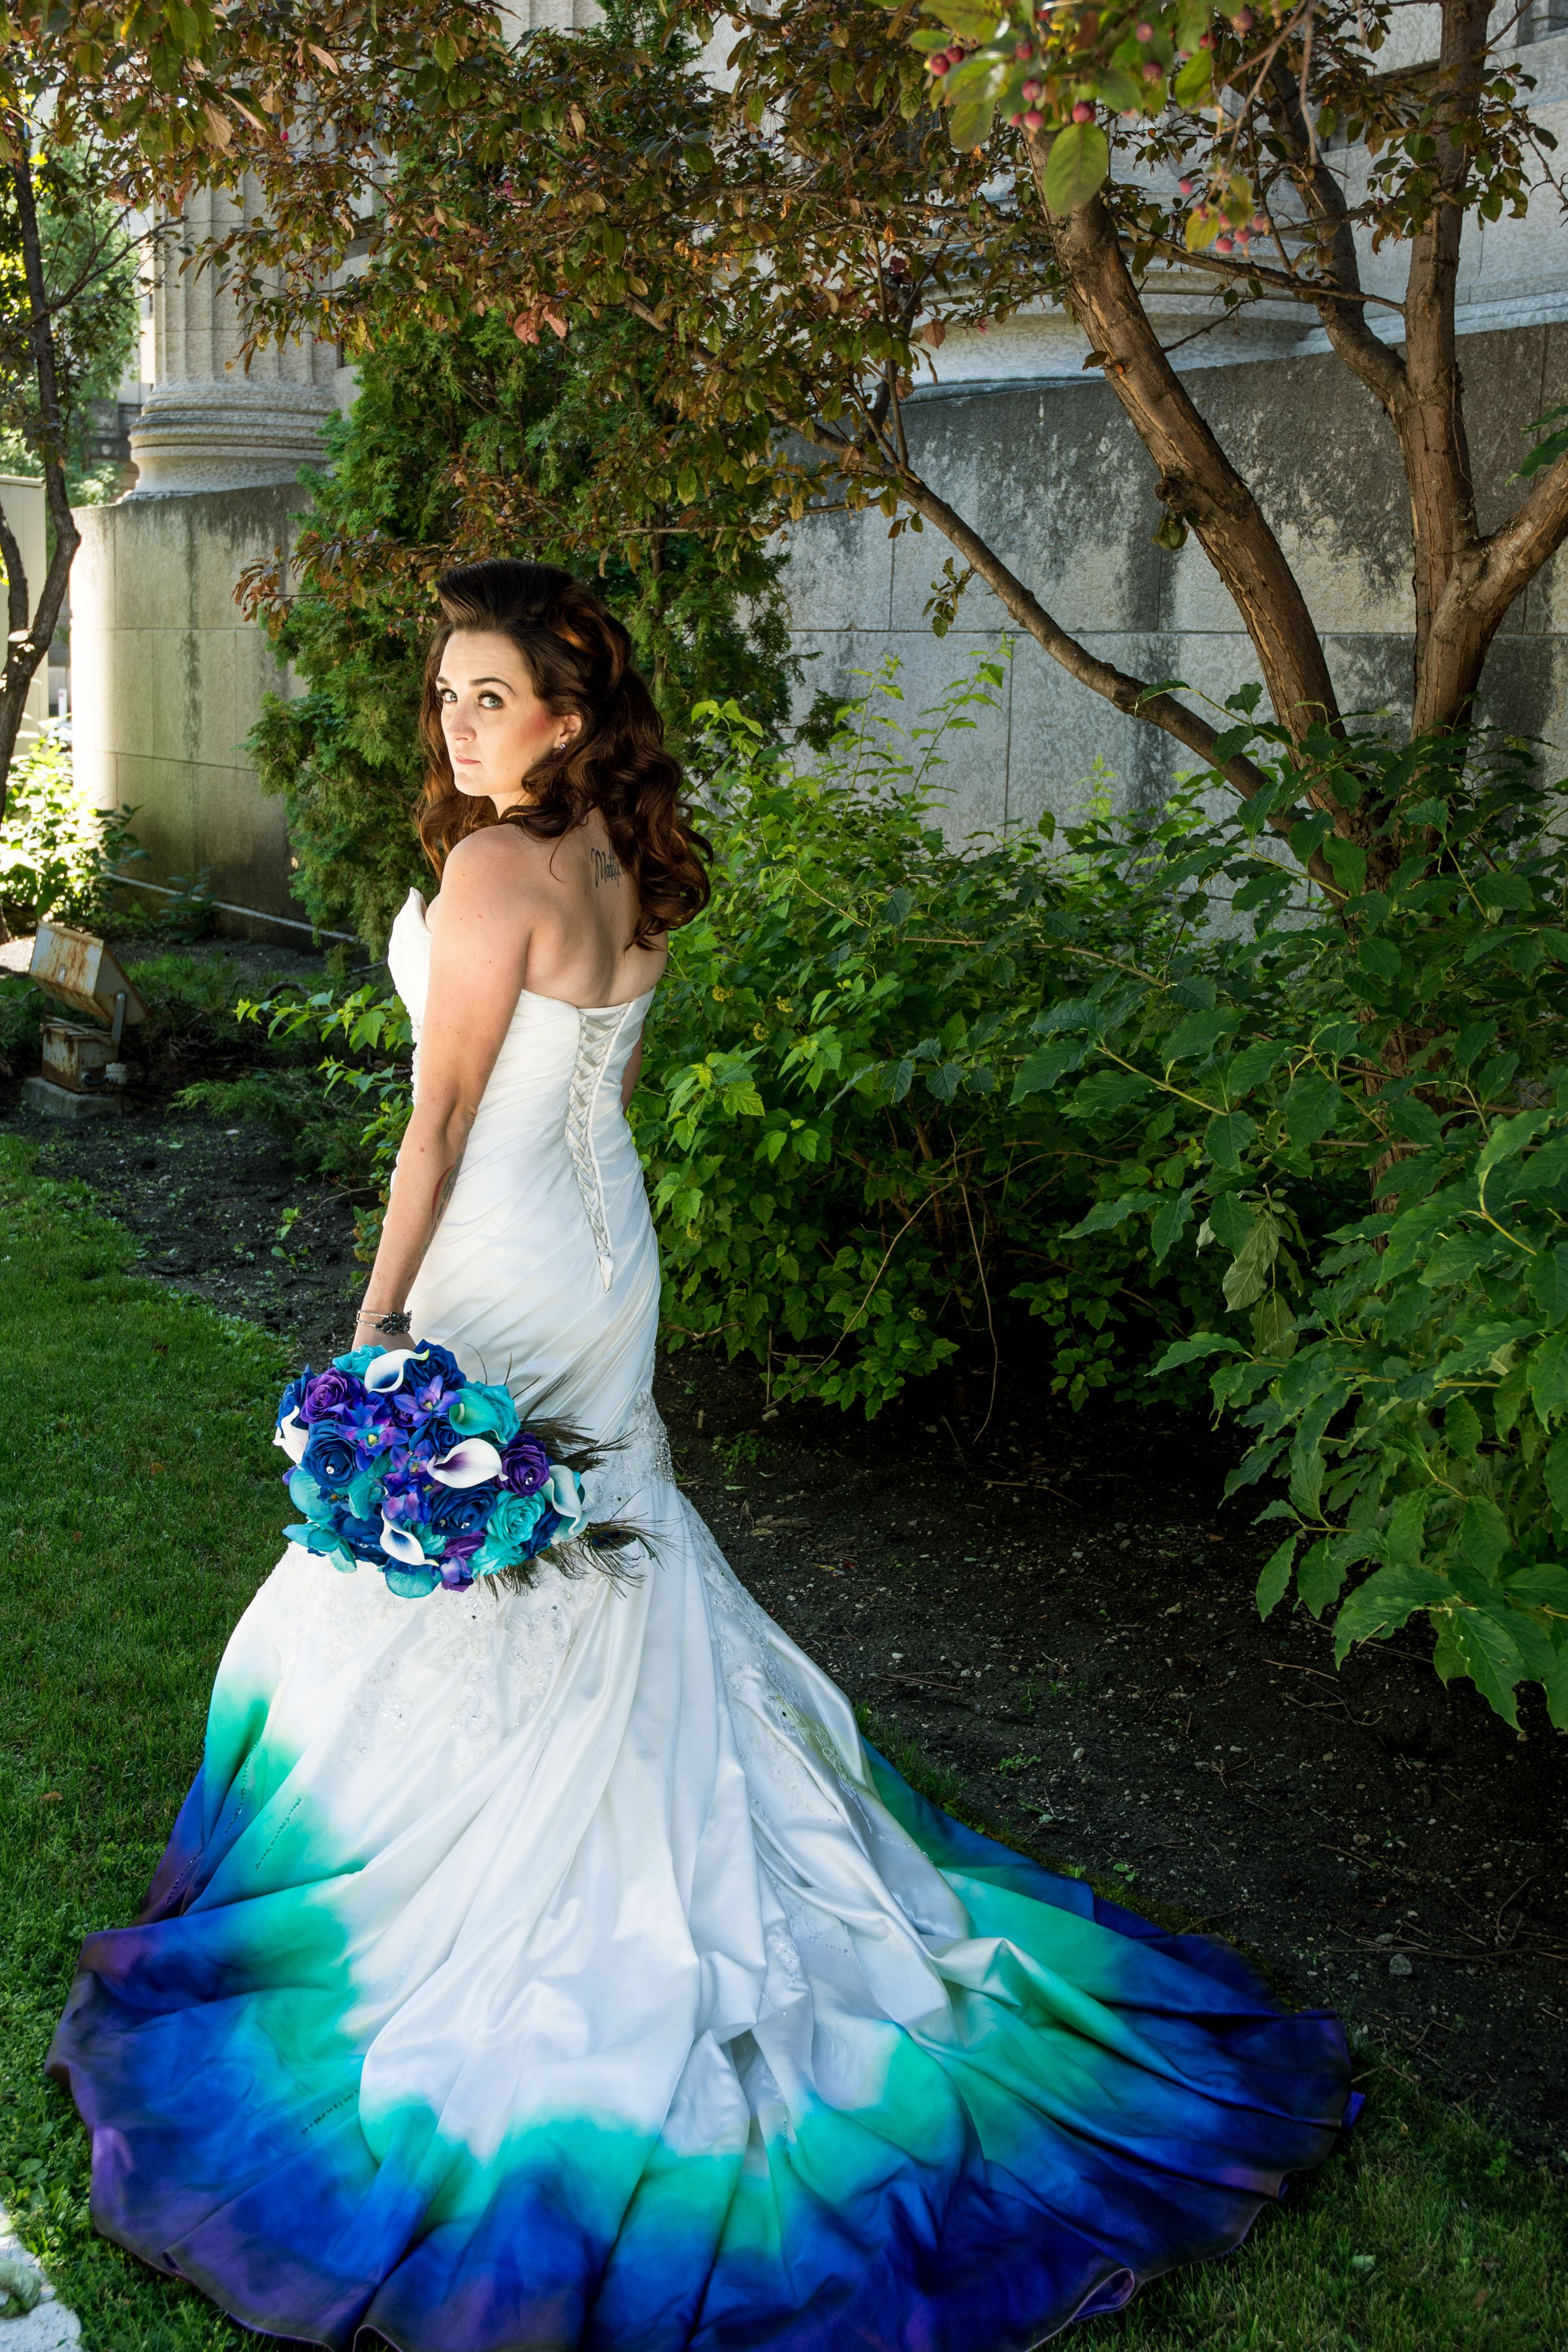 Airbrushed Pea Ombre Wedding Dress